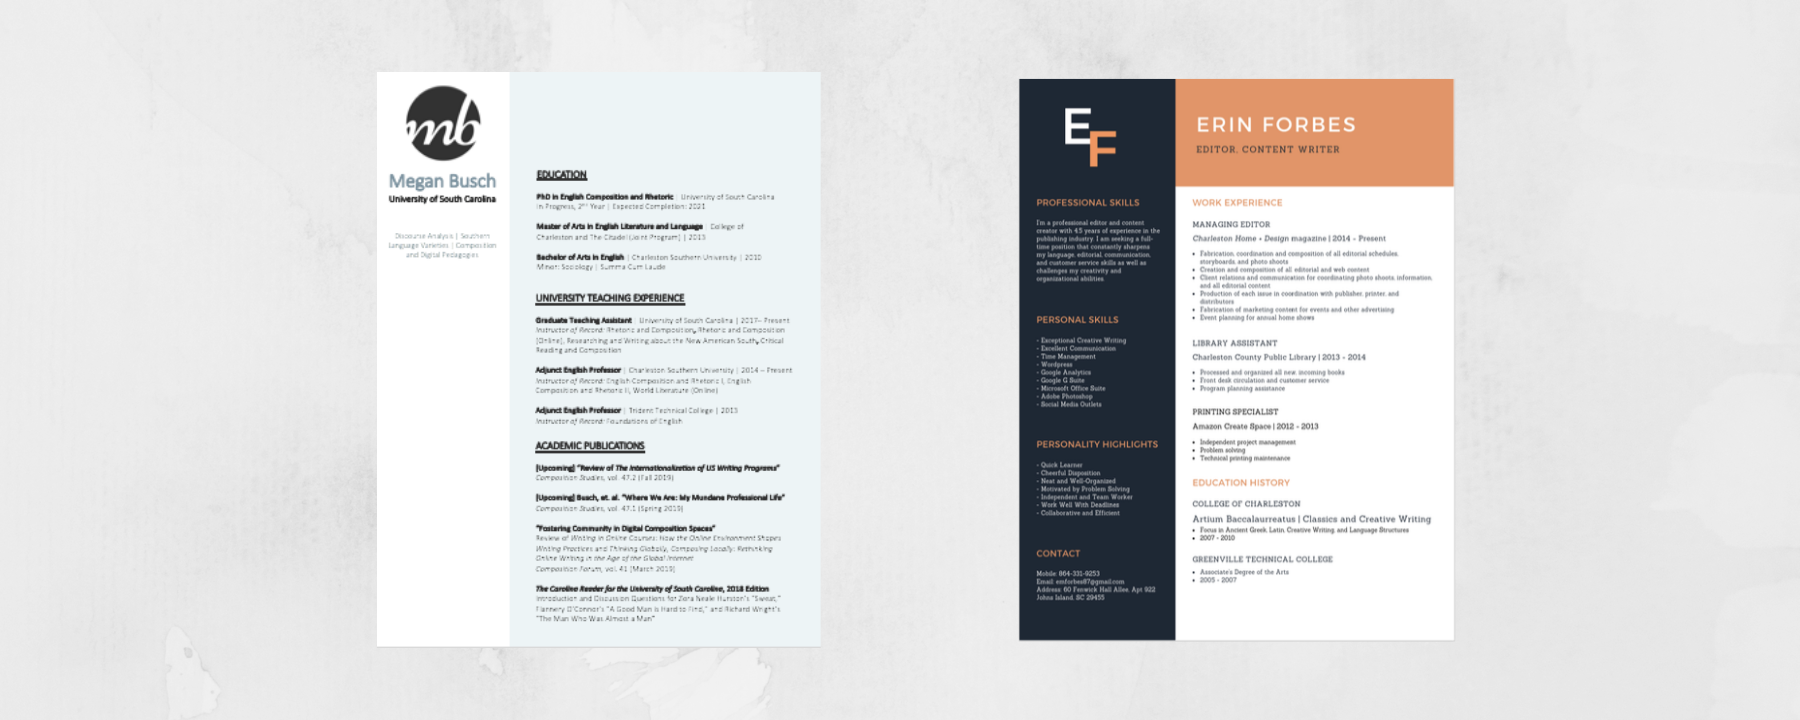 CV and resume created with powerpoint and canva.